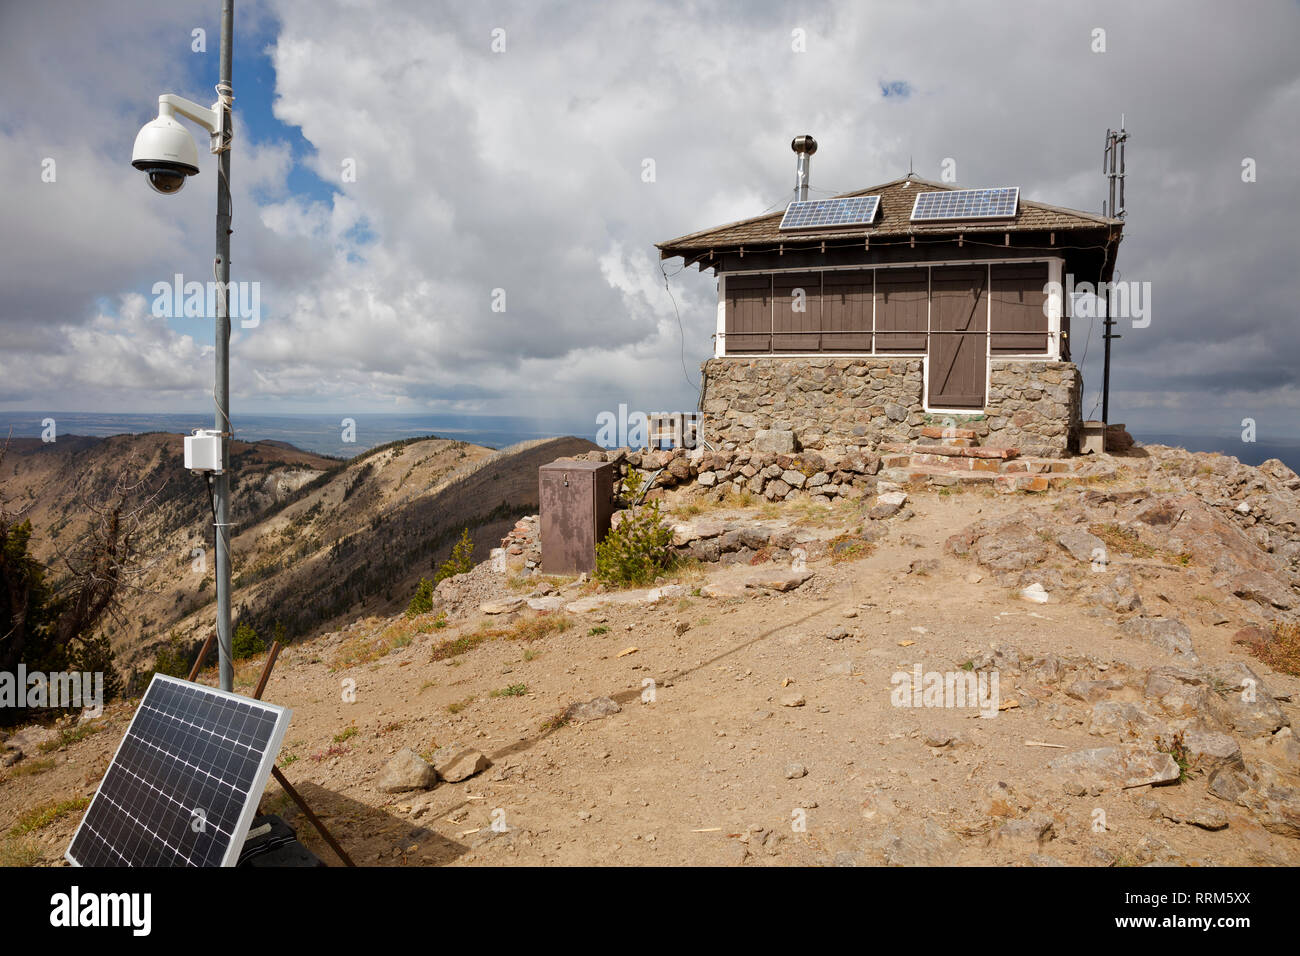 WY03845-00...WYOMING - Mount Sheridan Lookout located high above Heart Lake in the backcountry of Yellowstone National Park. - Stock Image